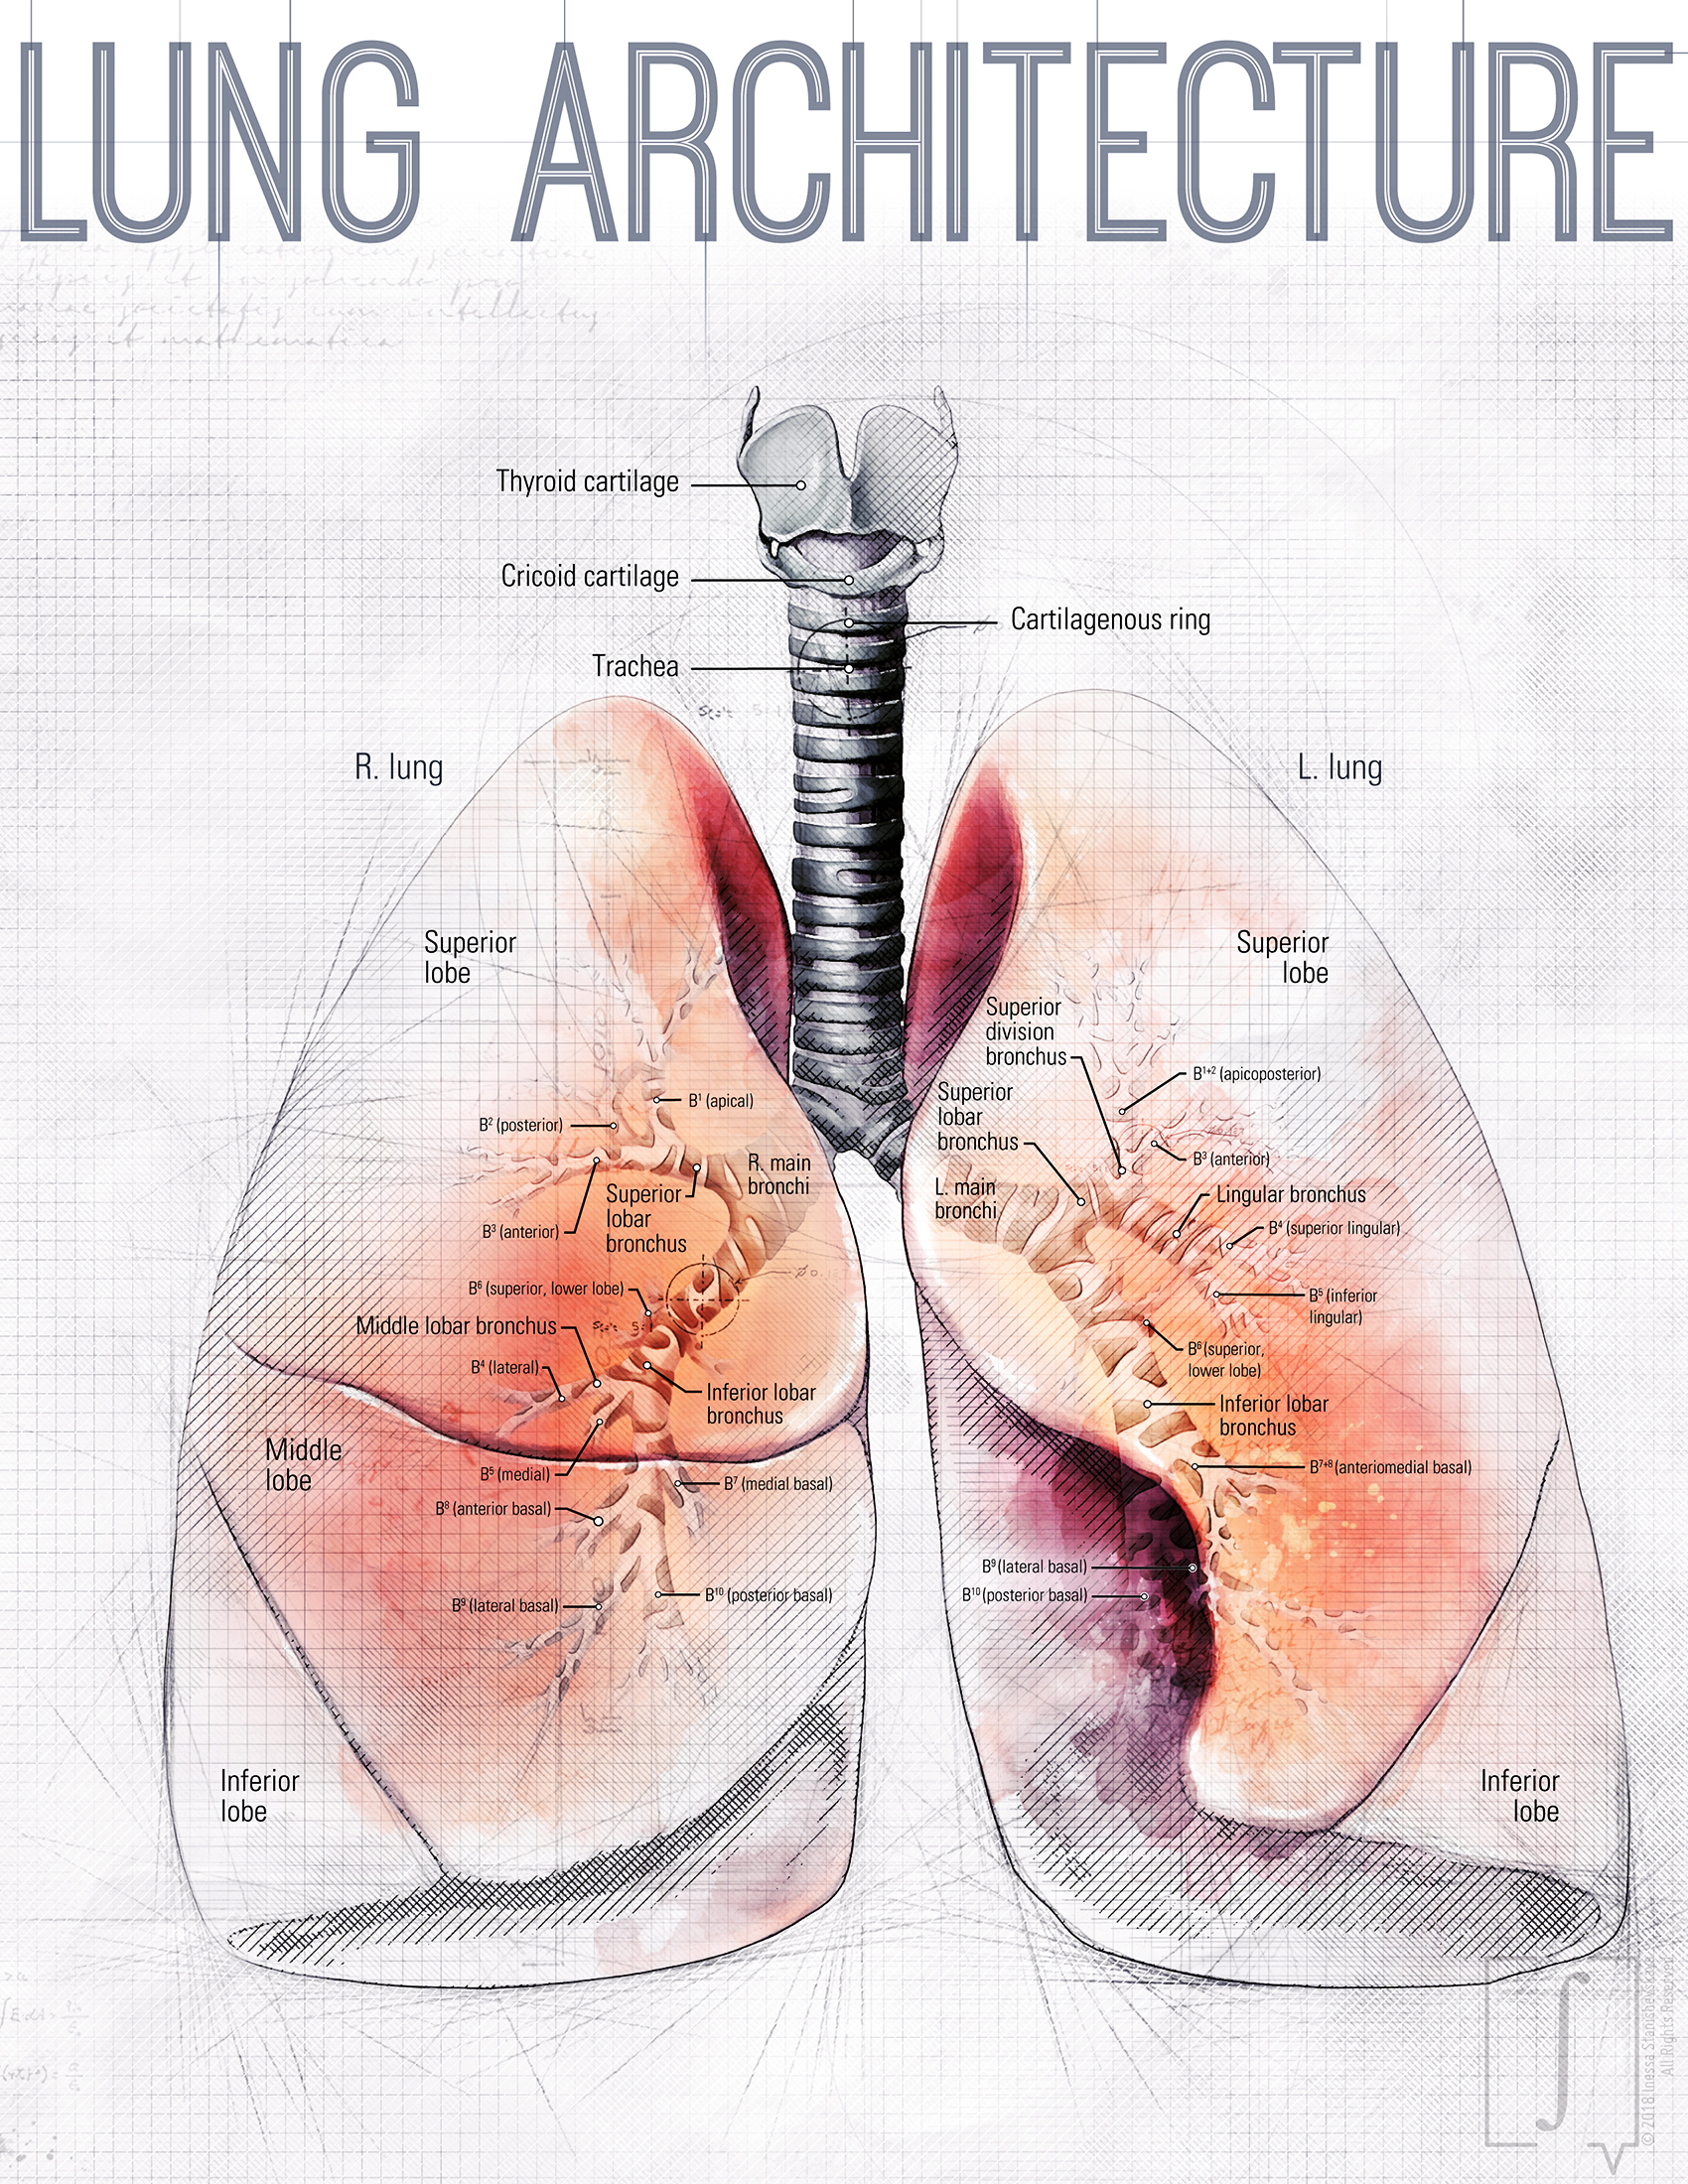 Lung Anatomy Inessa Stanishevskaya Biomedical Communication